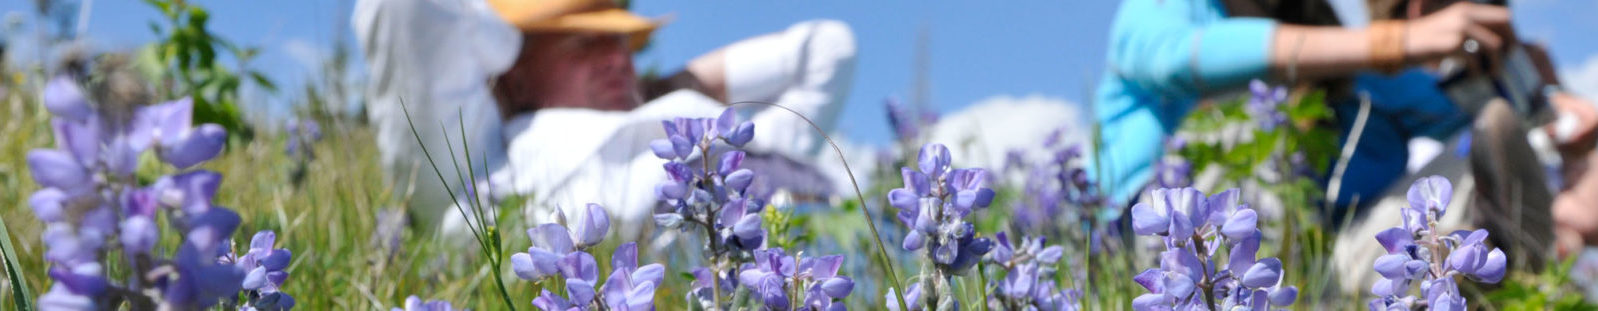 Purple Flowers and Relaxing People - Yellowstone things to do